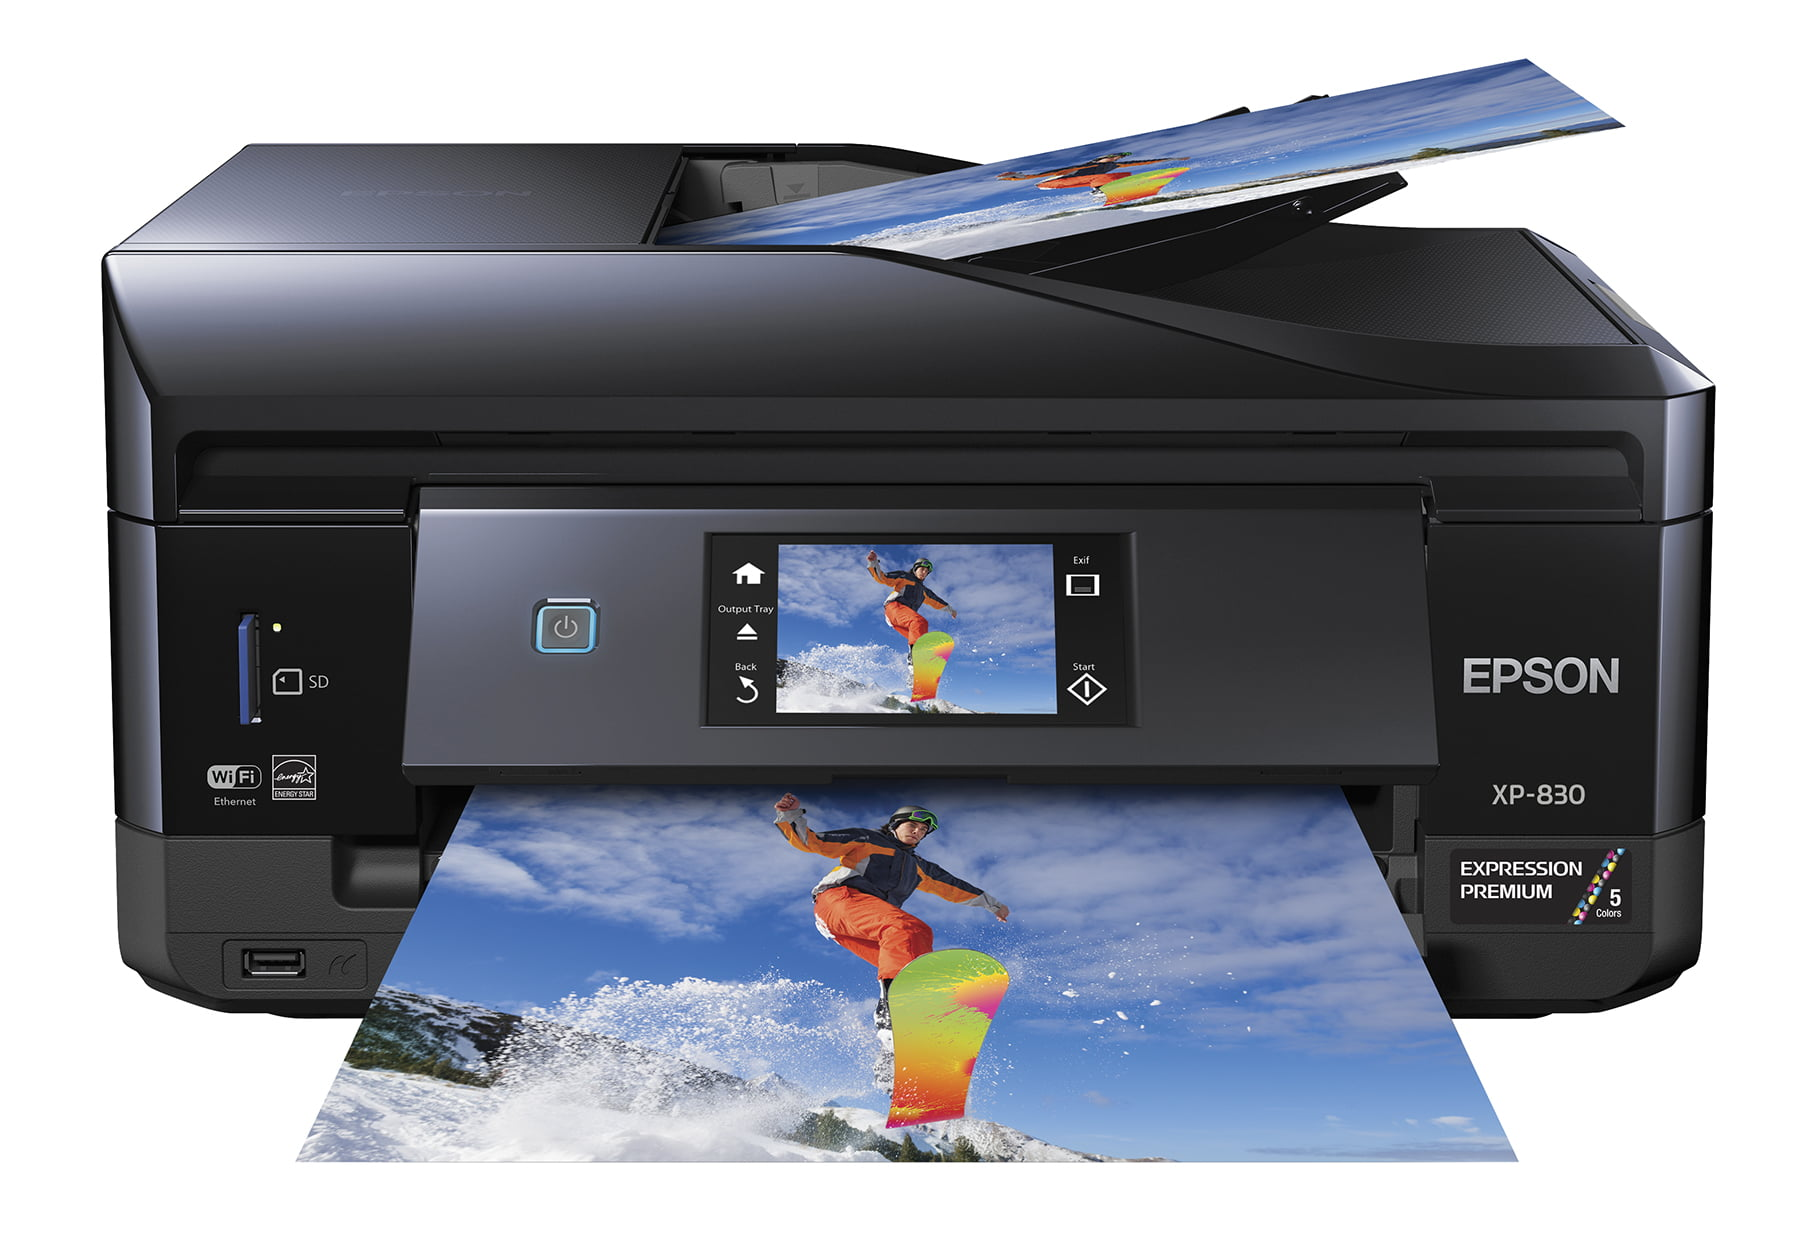 Epson Expression Premium XP-830 All-In-One Wireless Color Photo Printer with Scanner, Copier and Fax by Epson